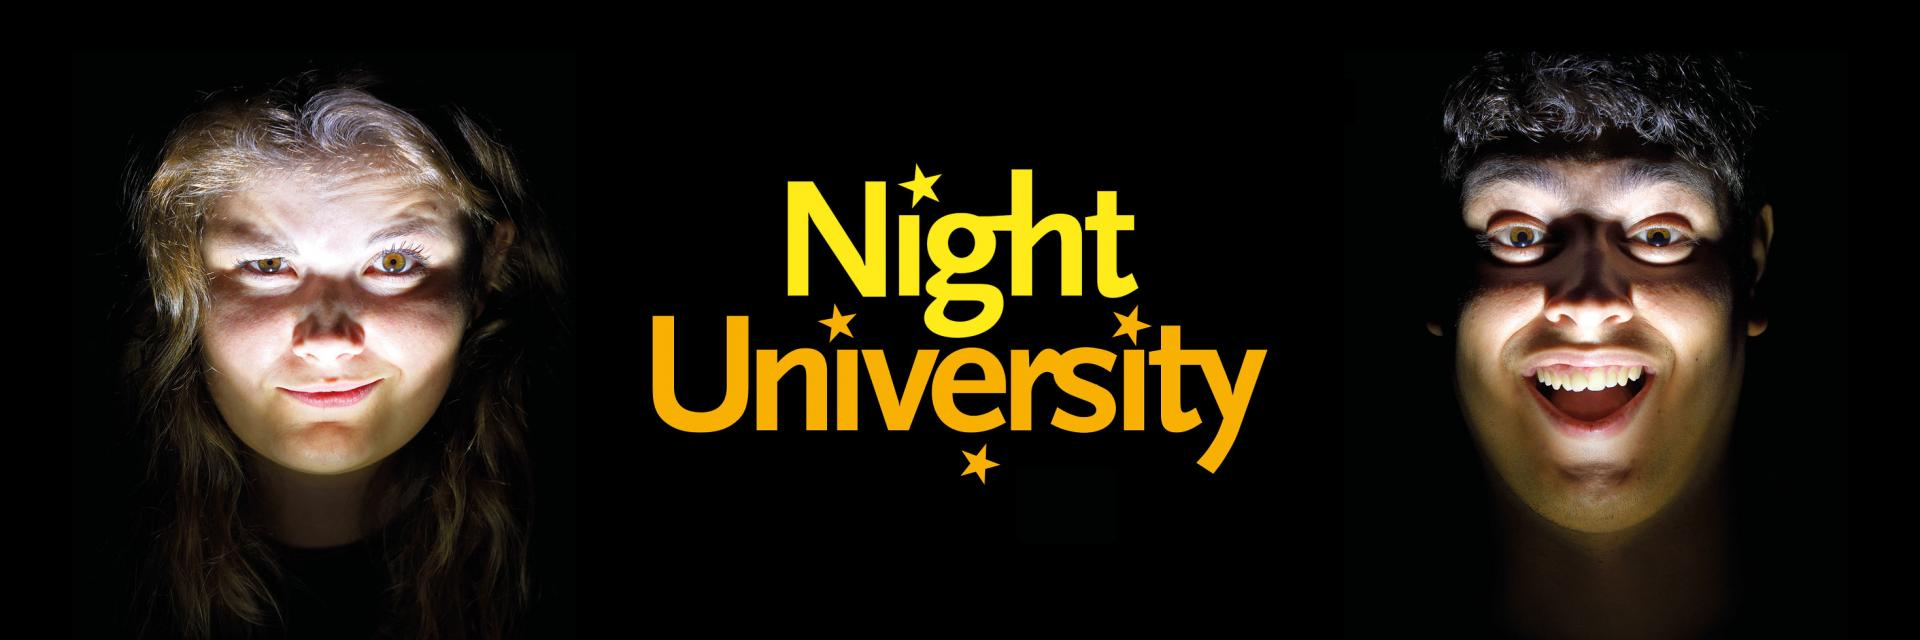 Night University 2019 algemeen